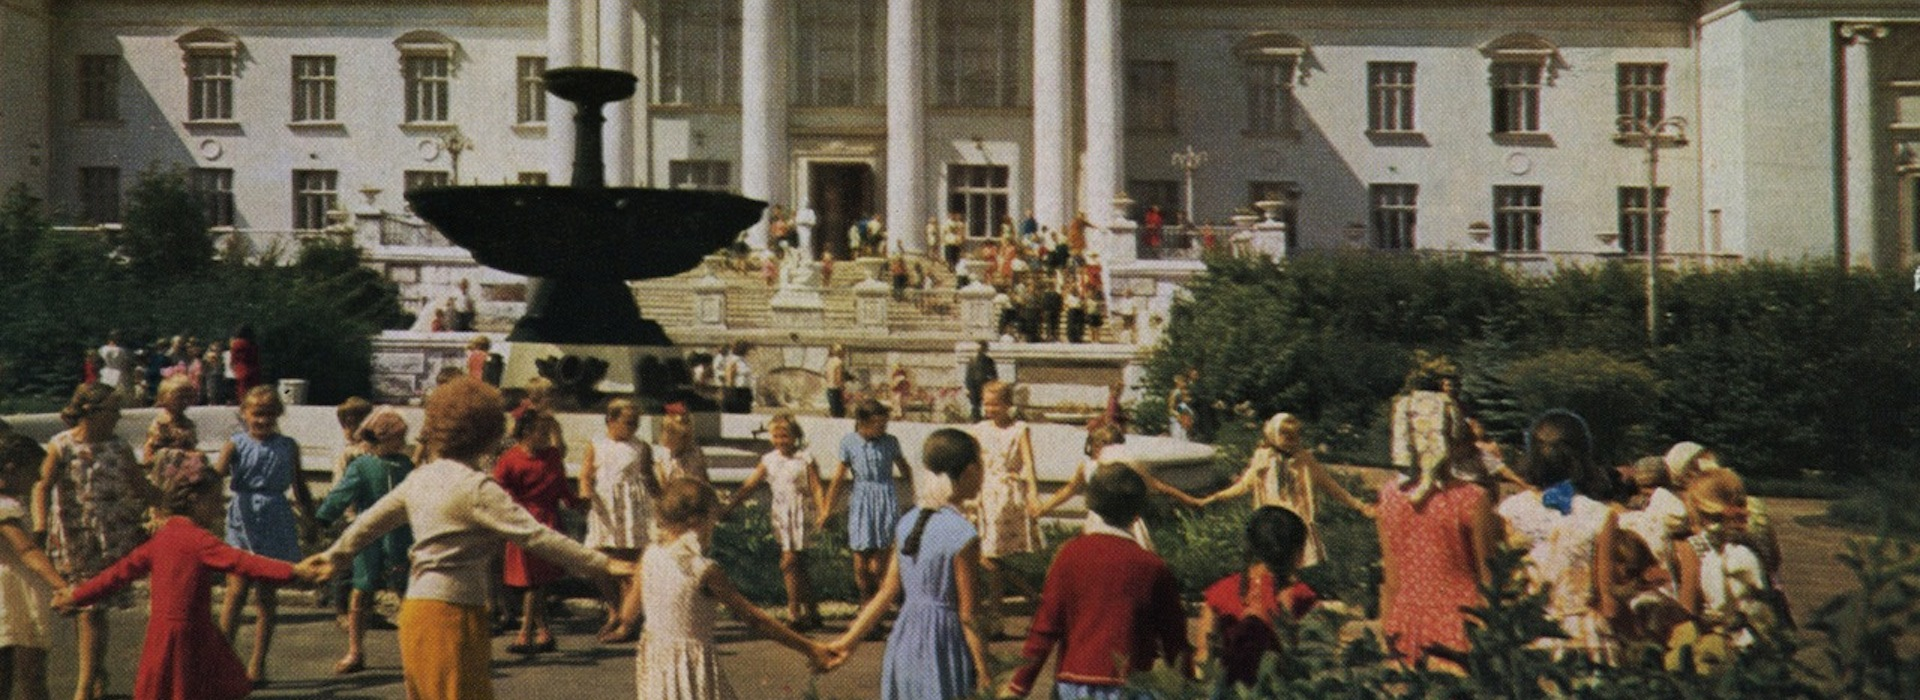 USSR redux: from art to food and film, how Russia fell back in love with the Soviet past